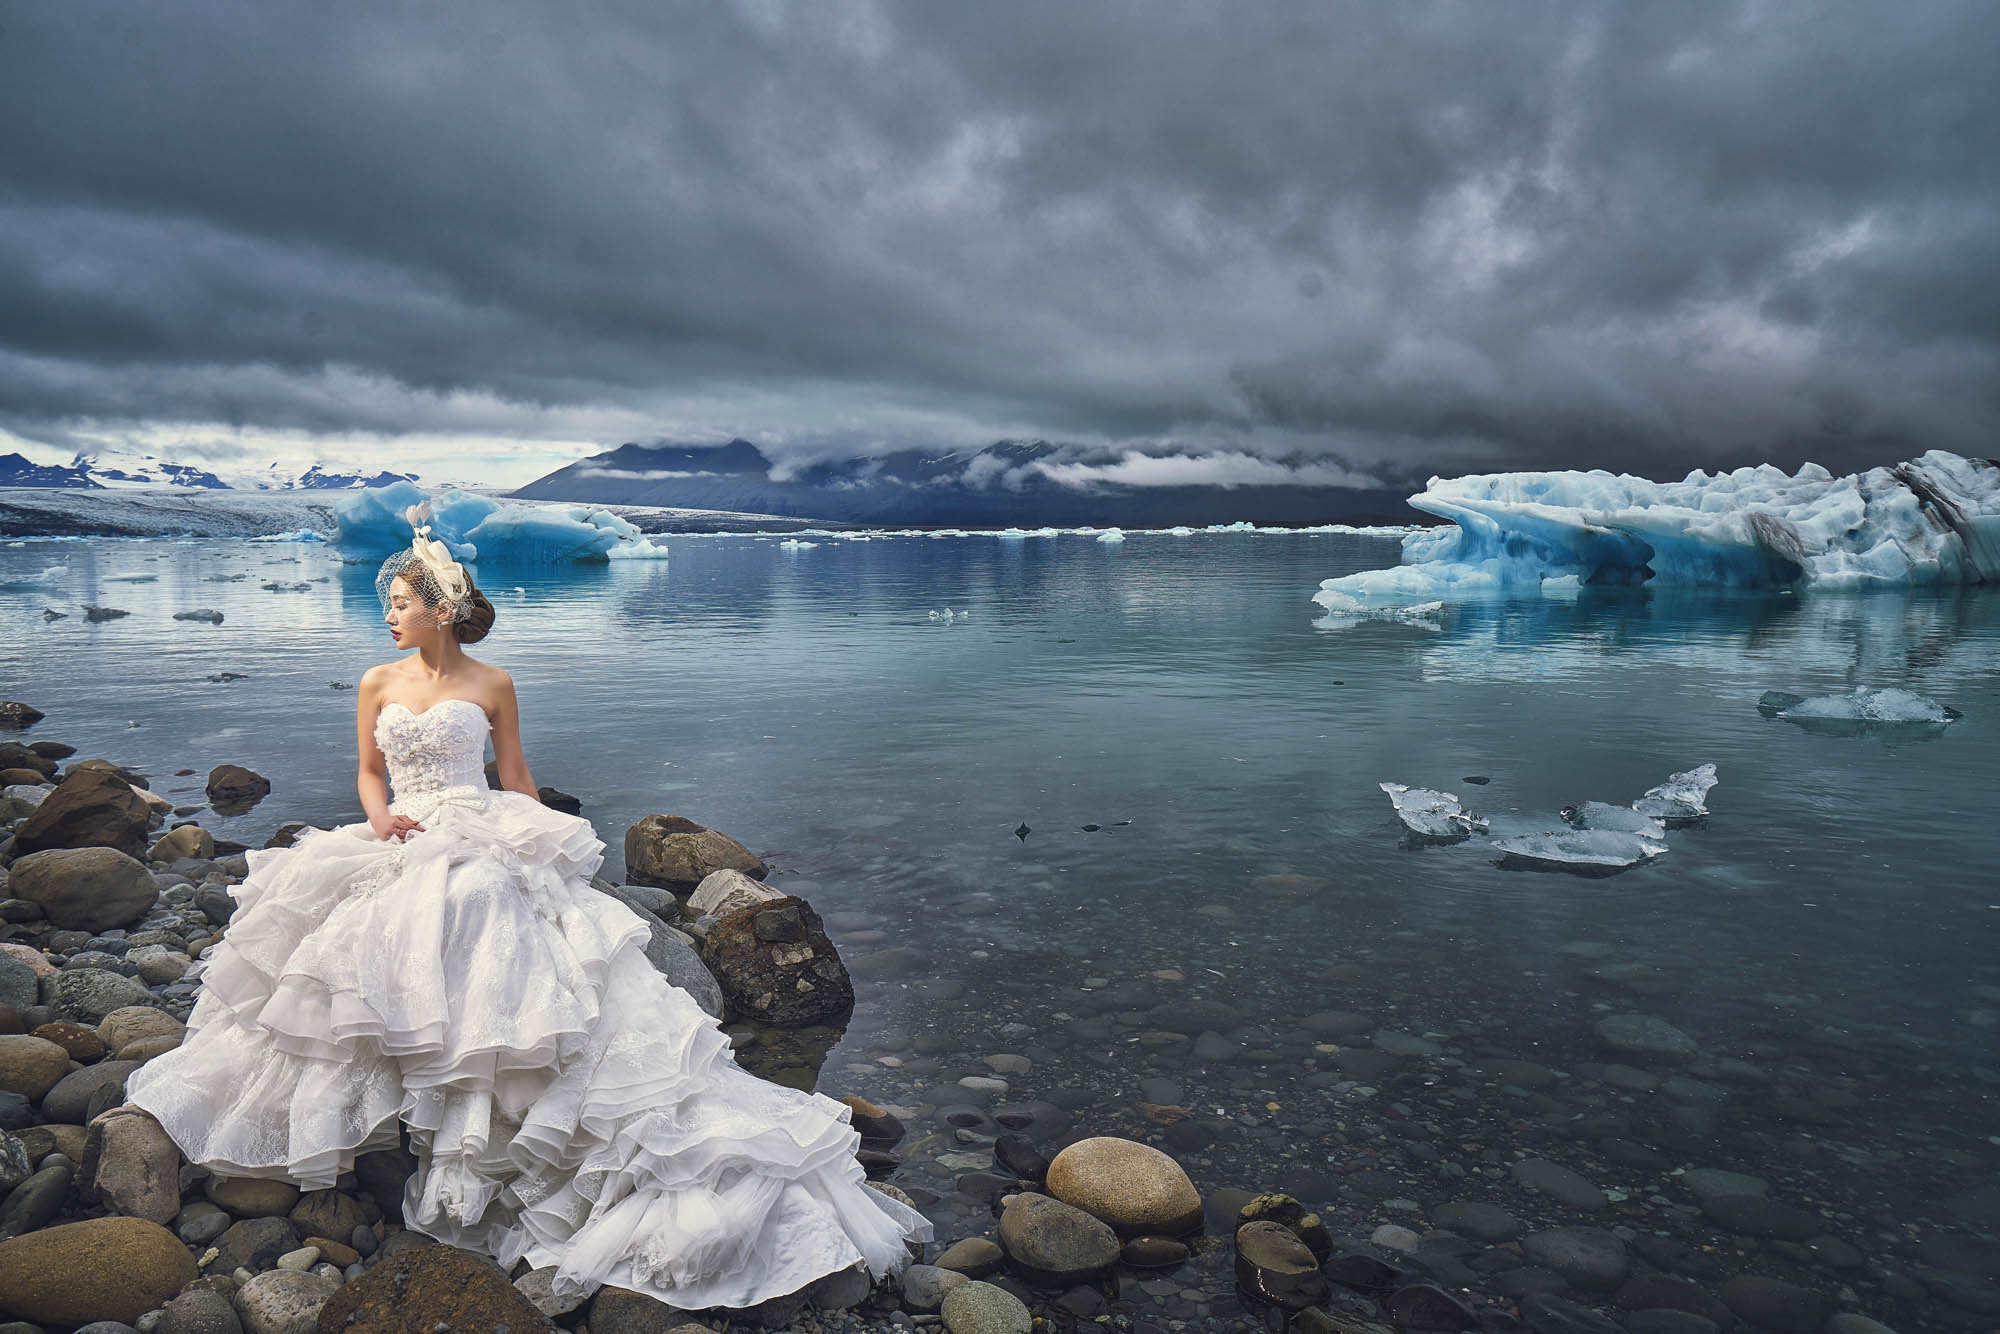 Bride in ruffled ballgown sitting in an ice lake by CM Leung